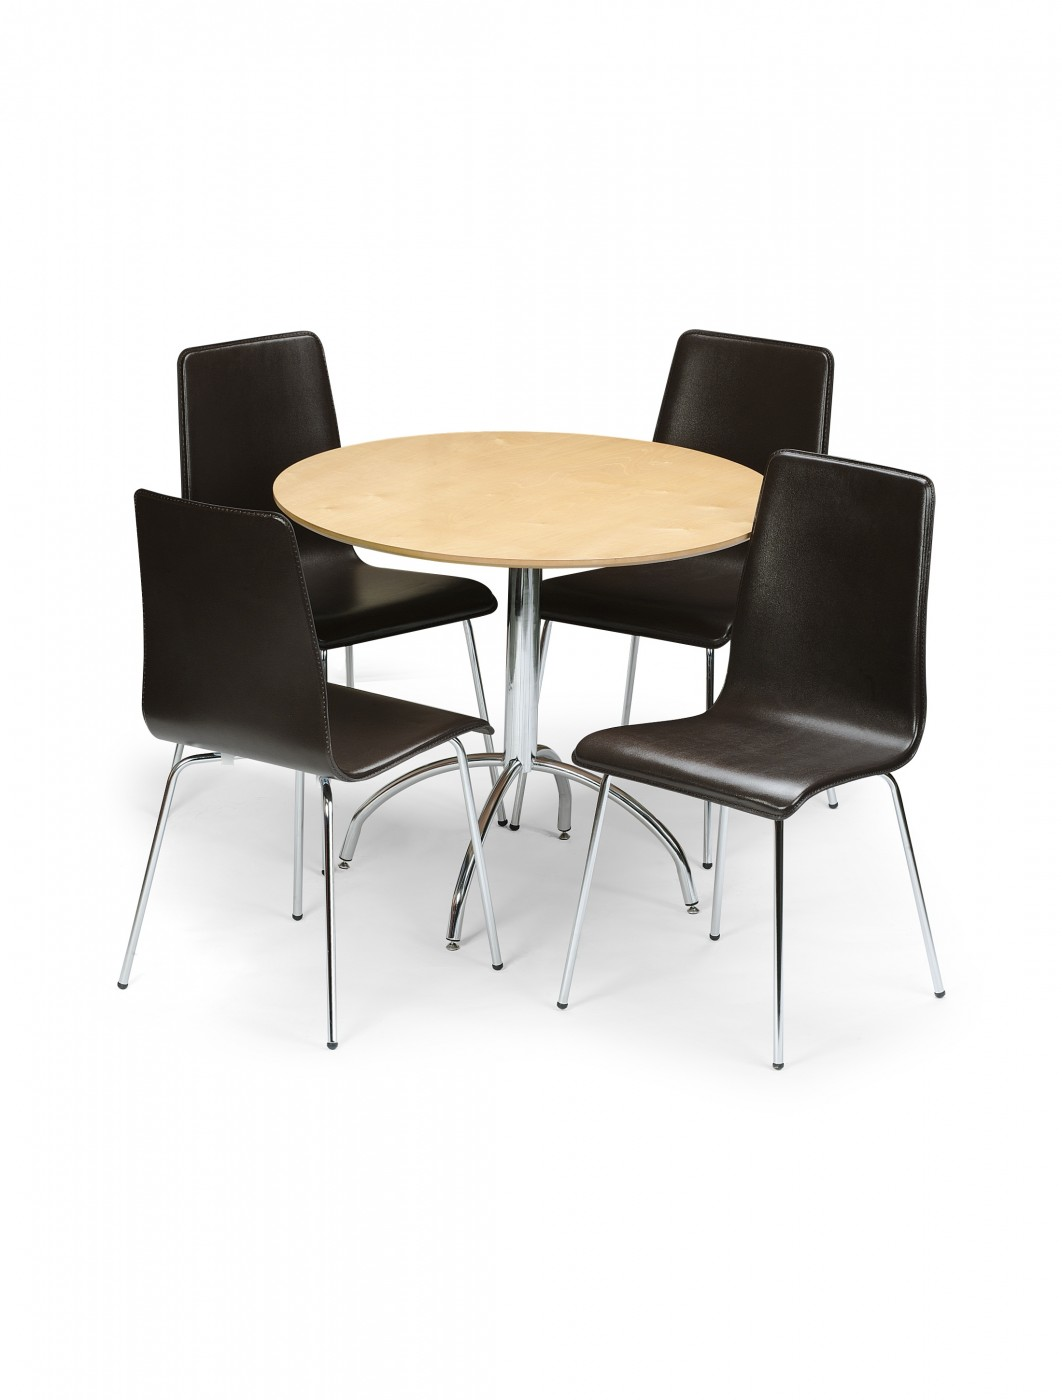 Dining Set MANSET 121 Office Furniture : 1380036245Q4dRMS6Dmandymapletablewithleatherchairs from www.121officefurniture.co.uk size 1062 x 1400 jpeg 94kB